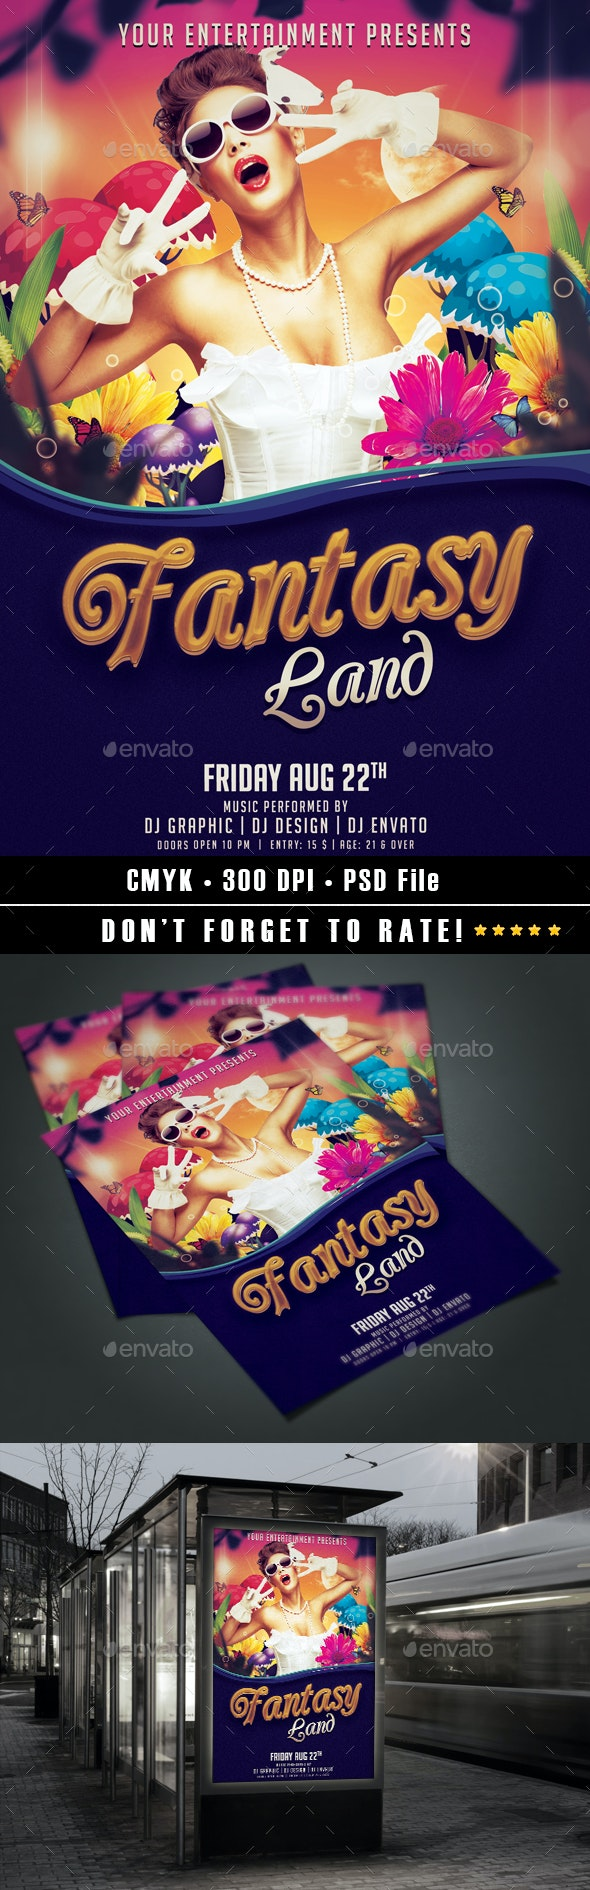 Fantasy Land Flyer - Events Flyers